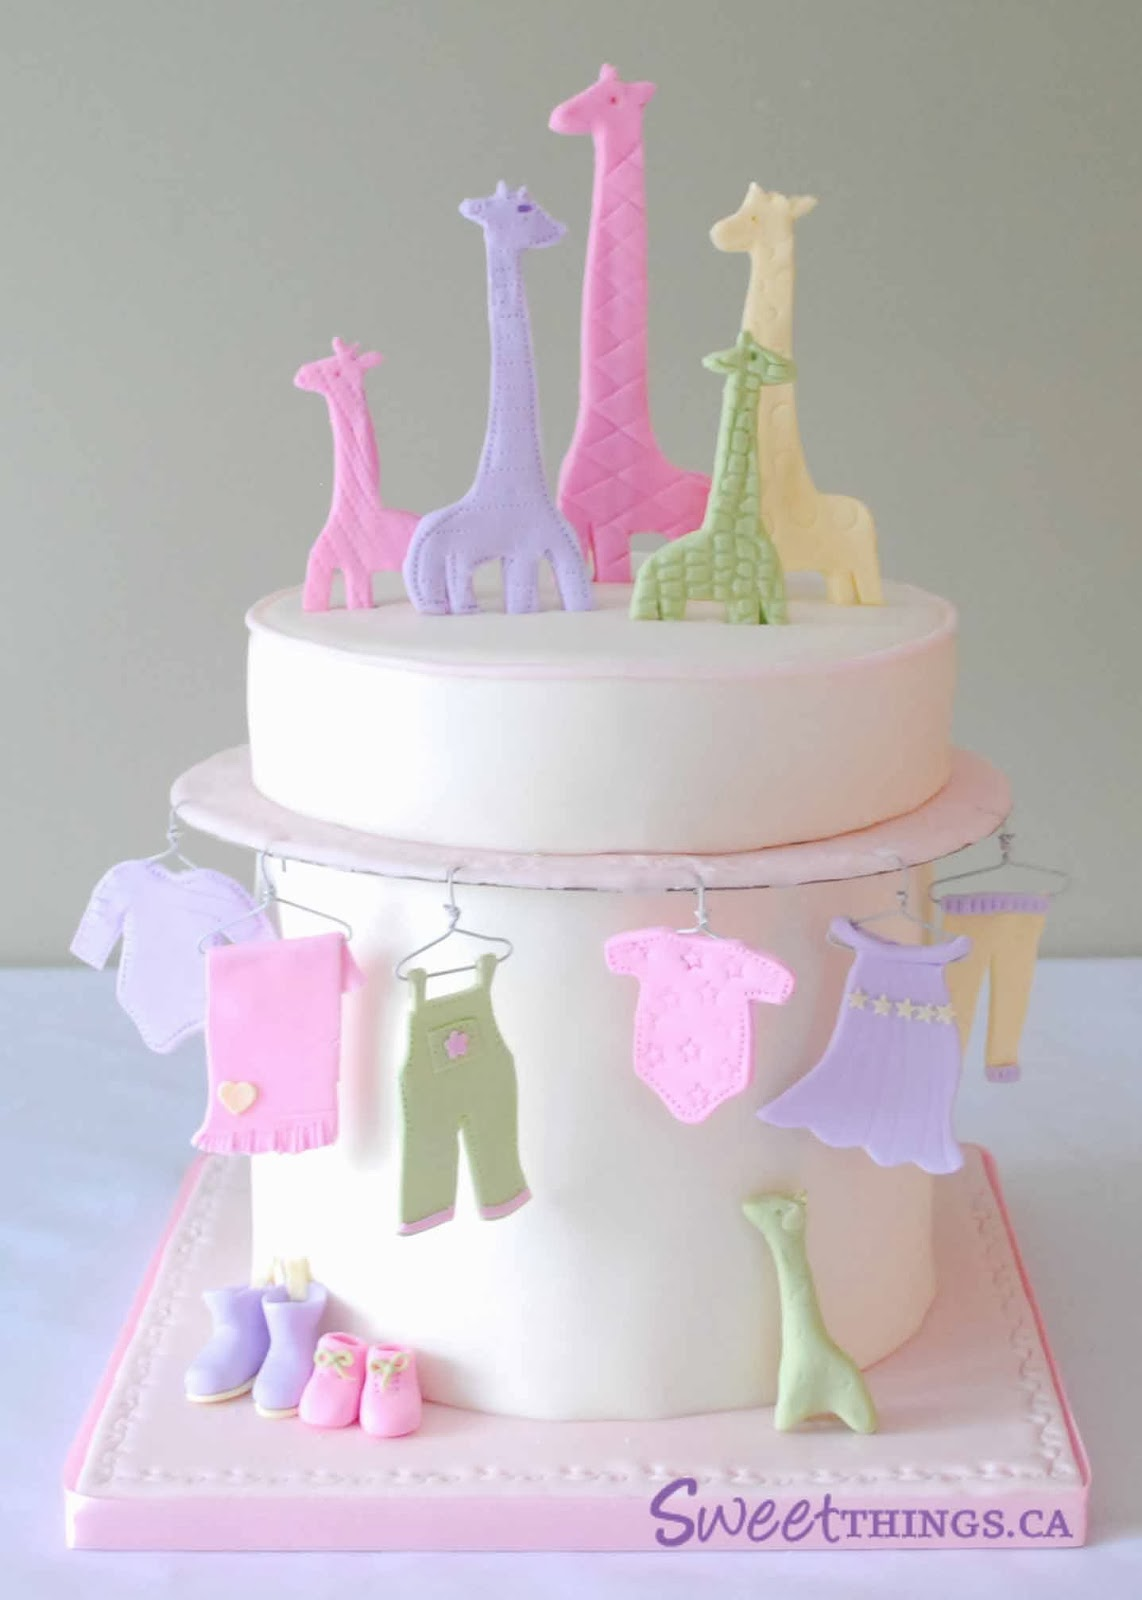 sweetthings cutest baby shower cake. Black Bedroom Furniture Sets. Home Design Ideas